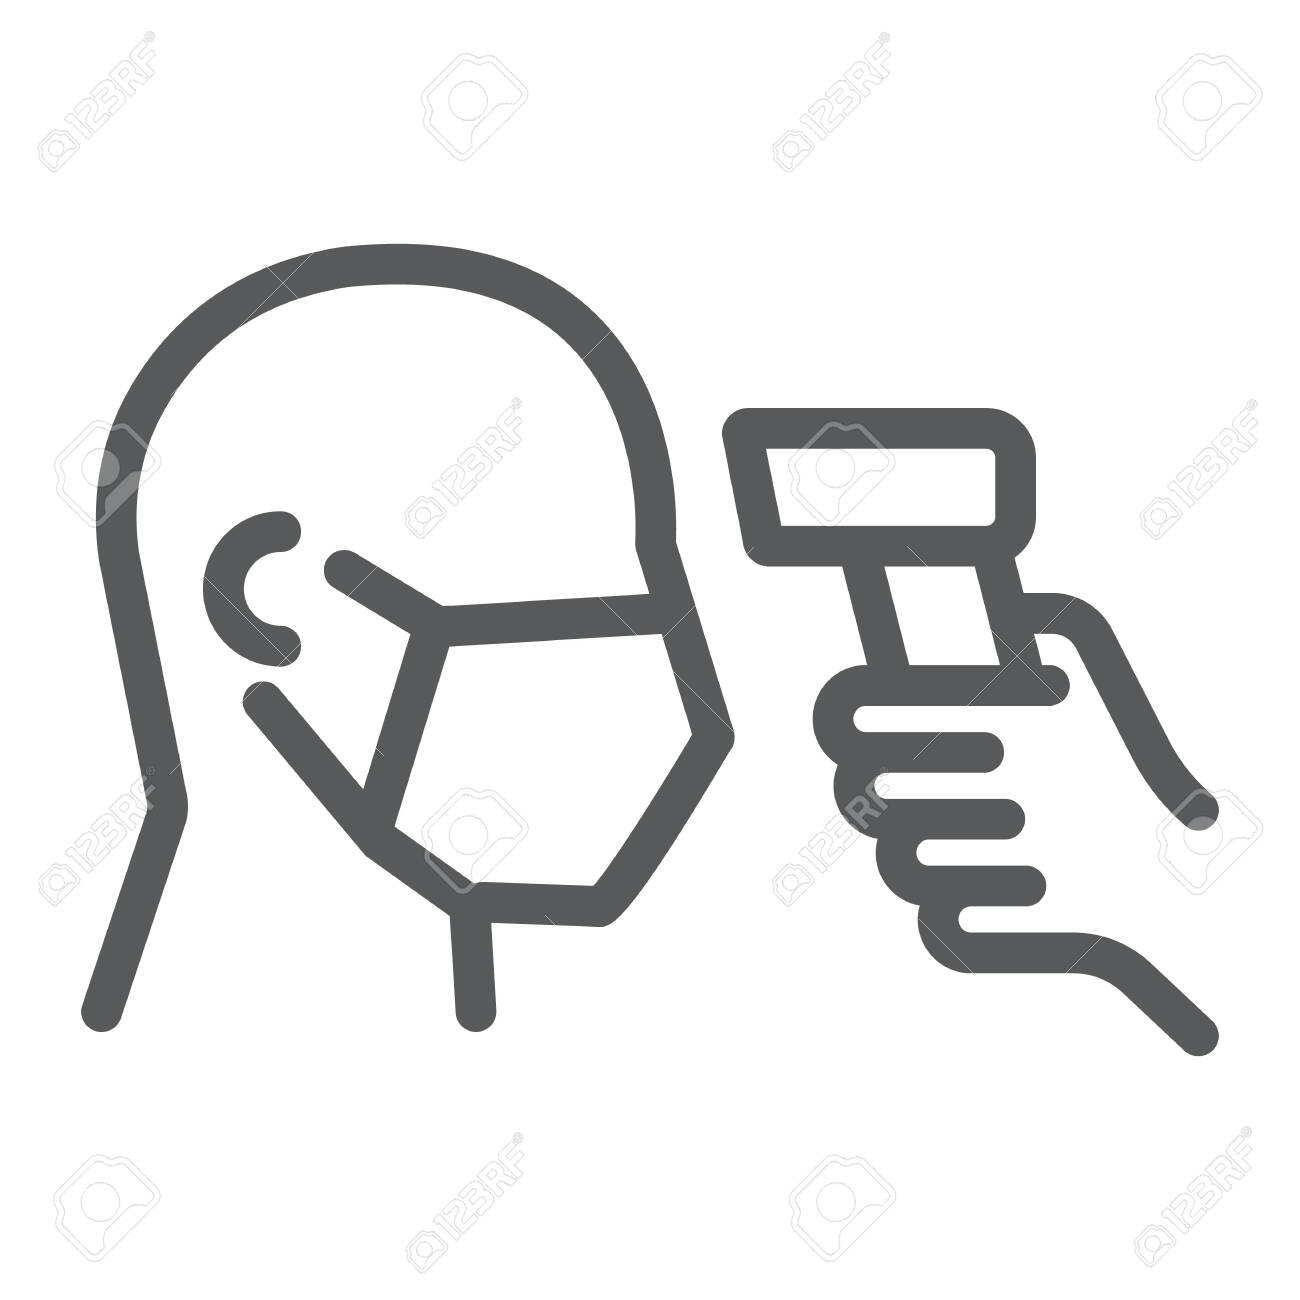 Checking Body Temperature Line Icon Coronavirus And Covid 19 Royalty Free Cliparts Vectors And Stock Illustration Image 143216763